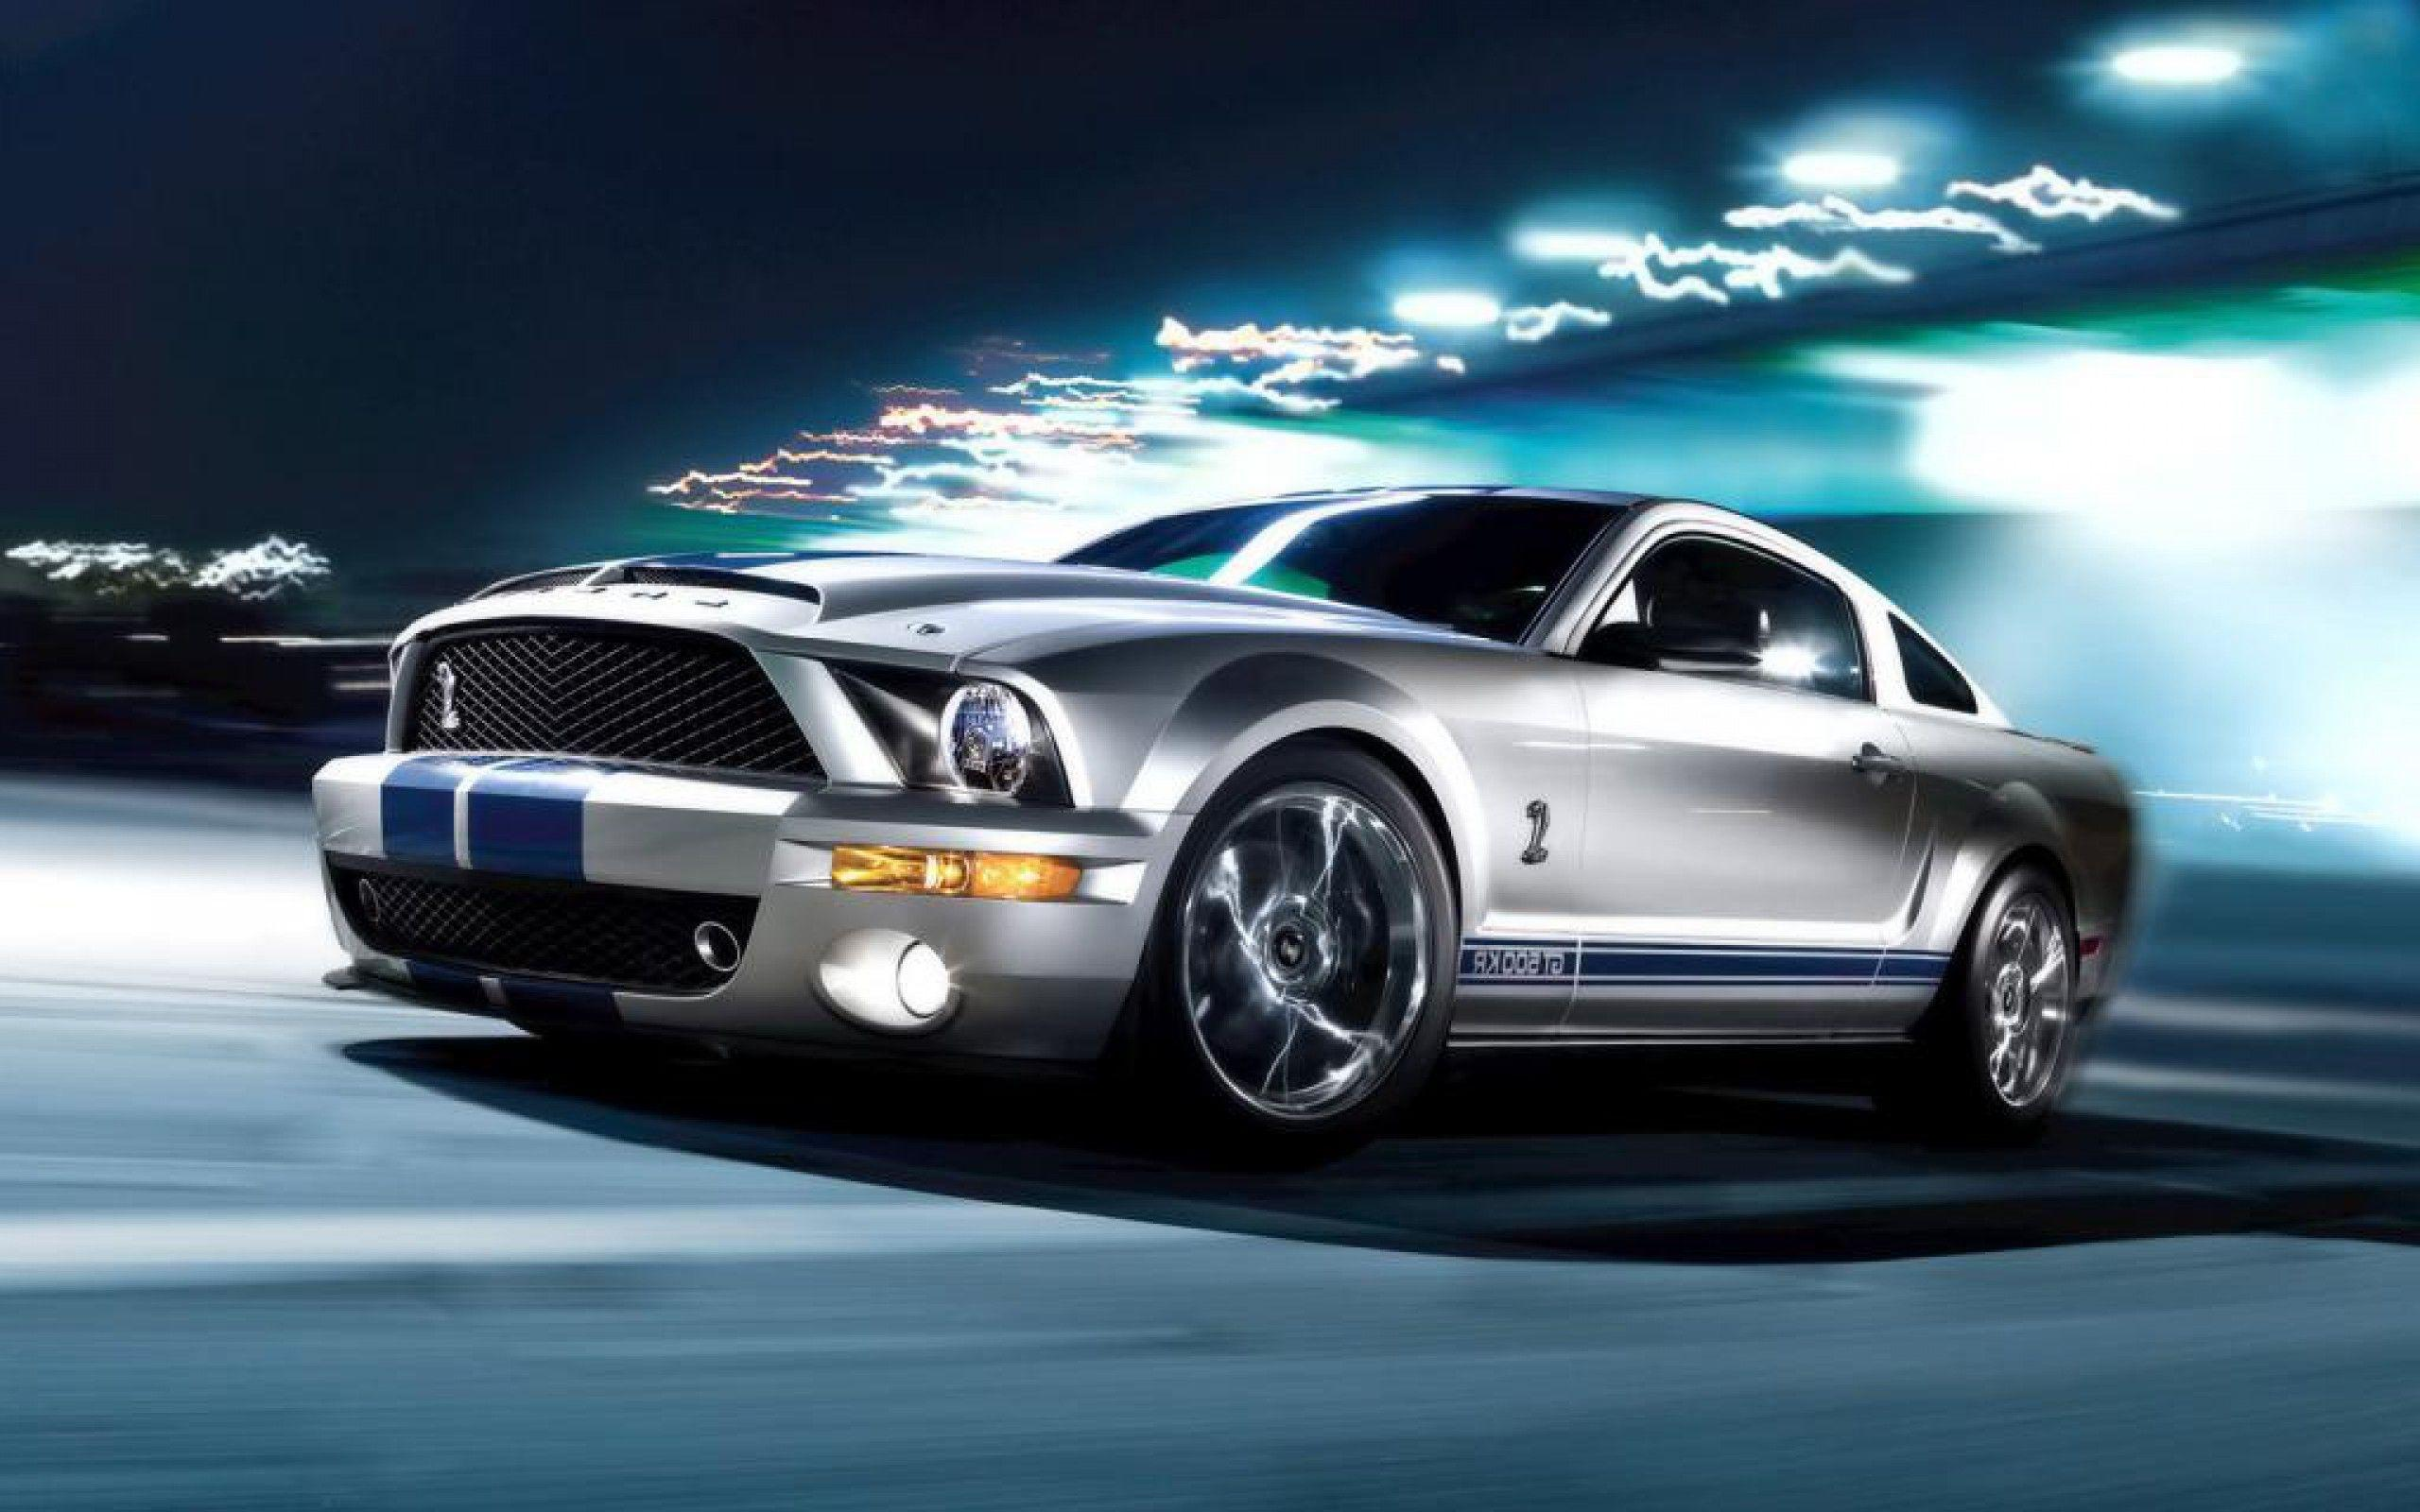 Shelby Mustang Wallpapers 2560x1600